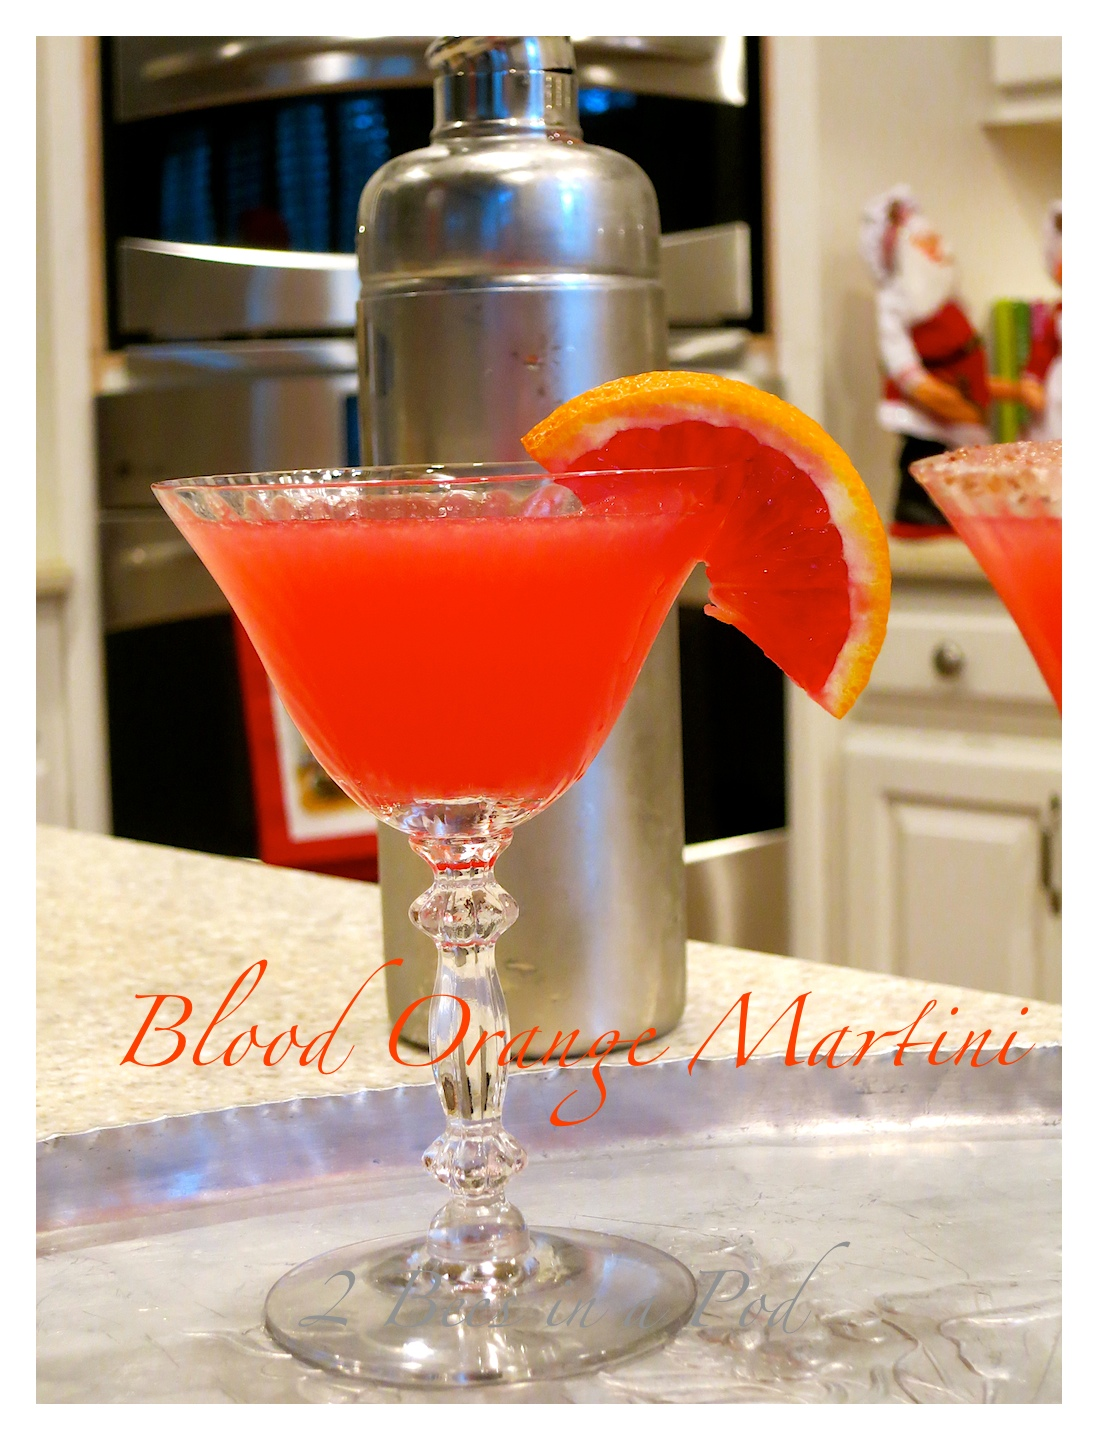 Perfect holiday cocktail - Blood Orange Martini. This orange is only available in markets from the end of November to mid-February. Perfect for entertaining at Thanksgiving or Christmas!